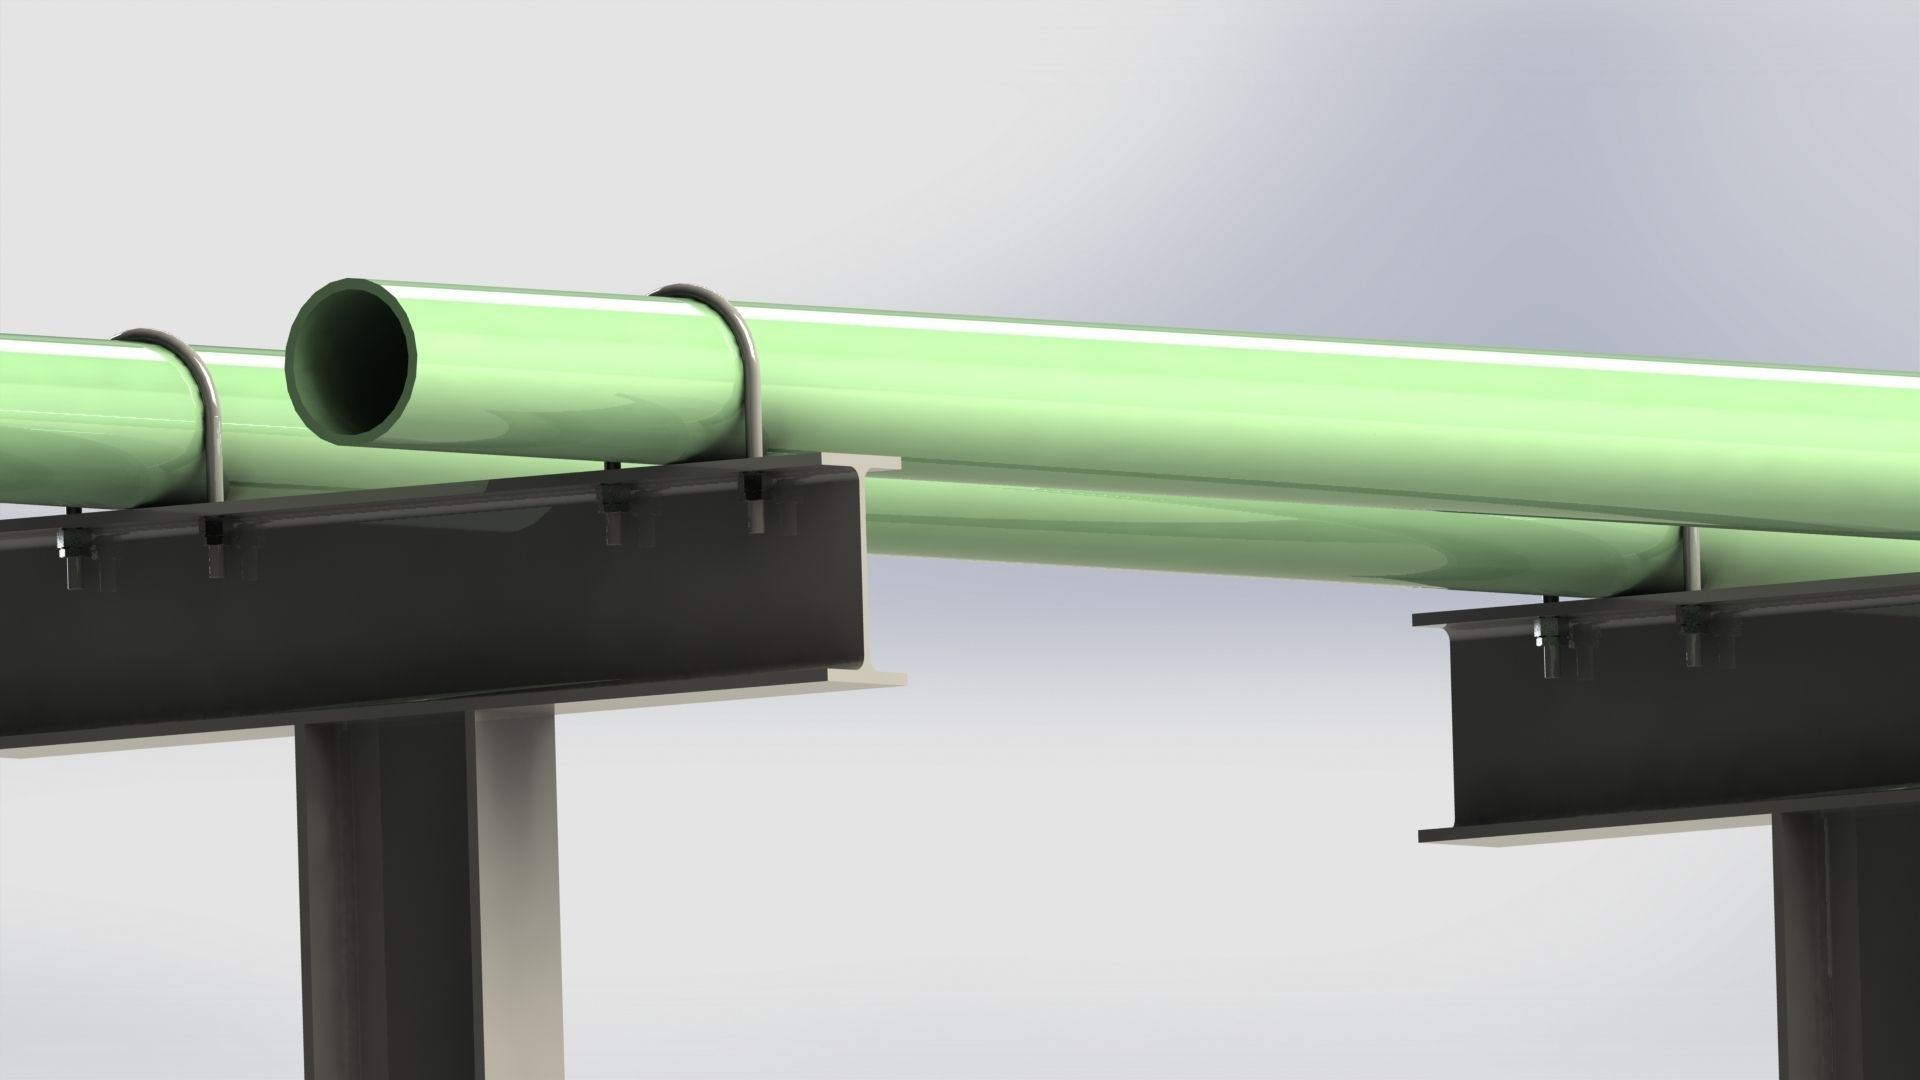 Pipe Support Free 3d Model